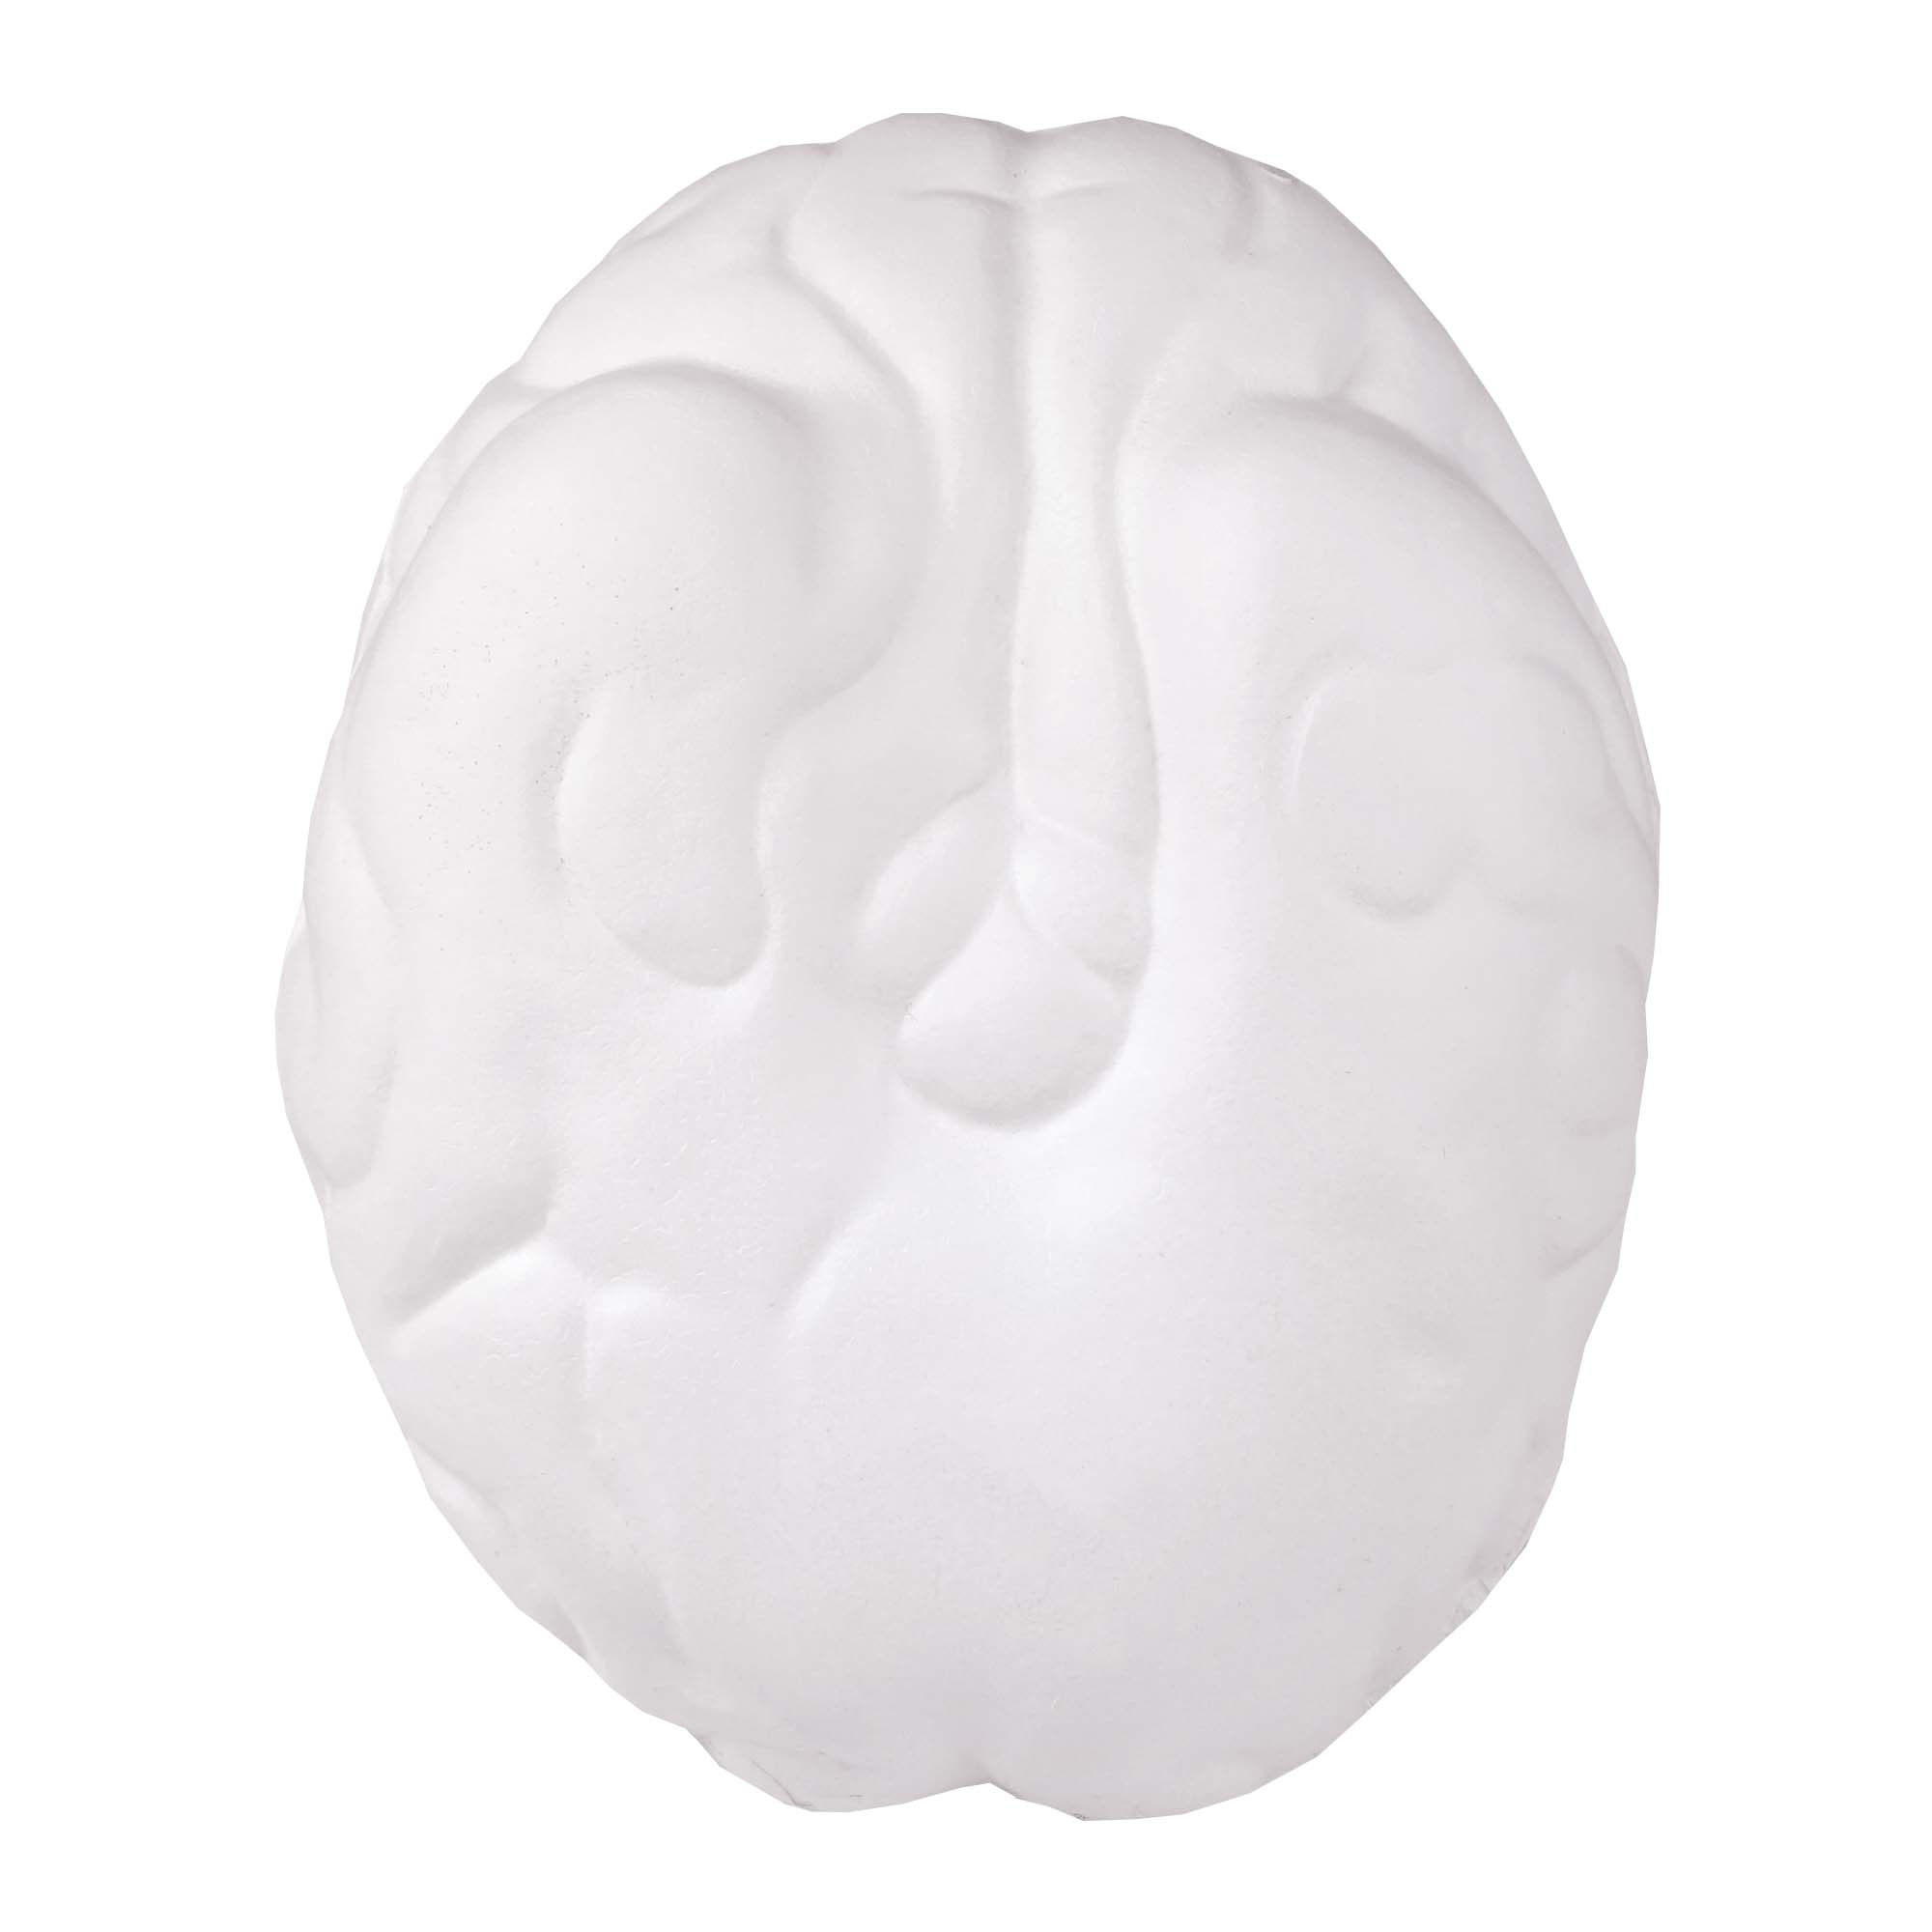 Branded Brain Shaped Stress